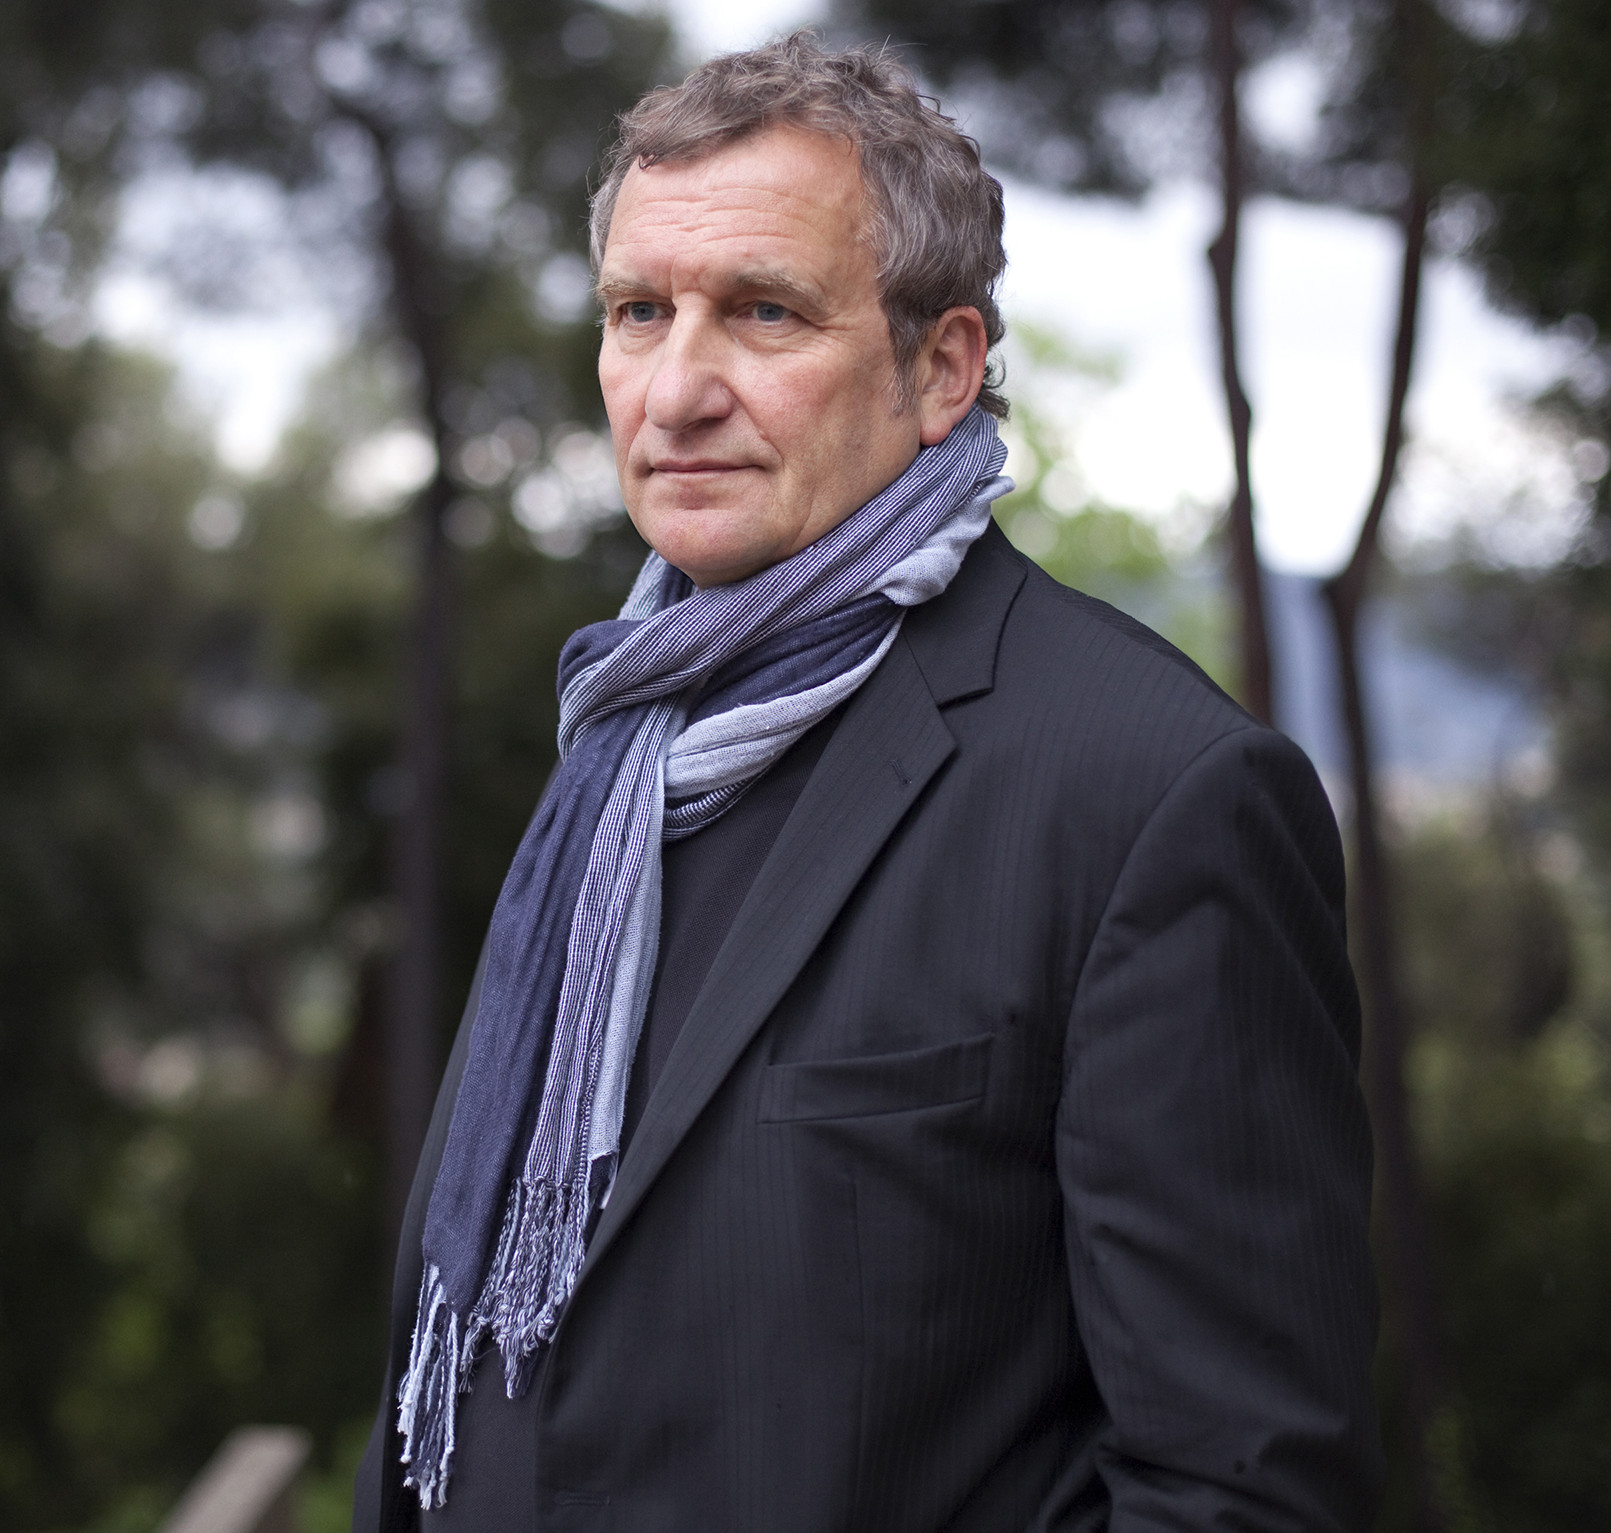 Photo Fred de Gasquet courtesy Fondation Maeght